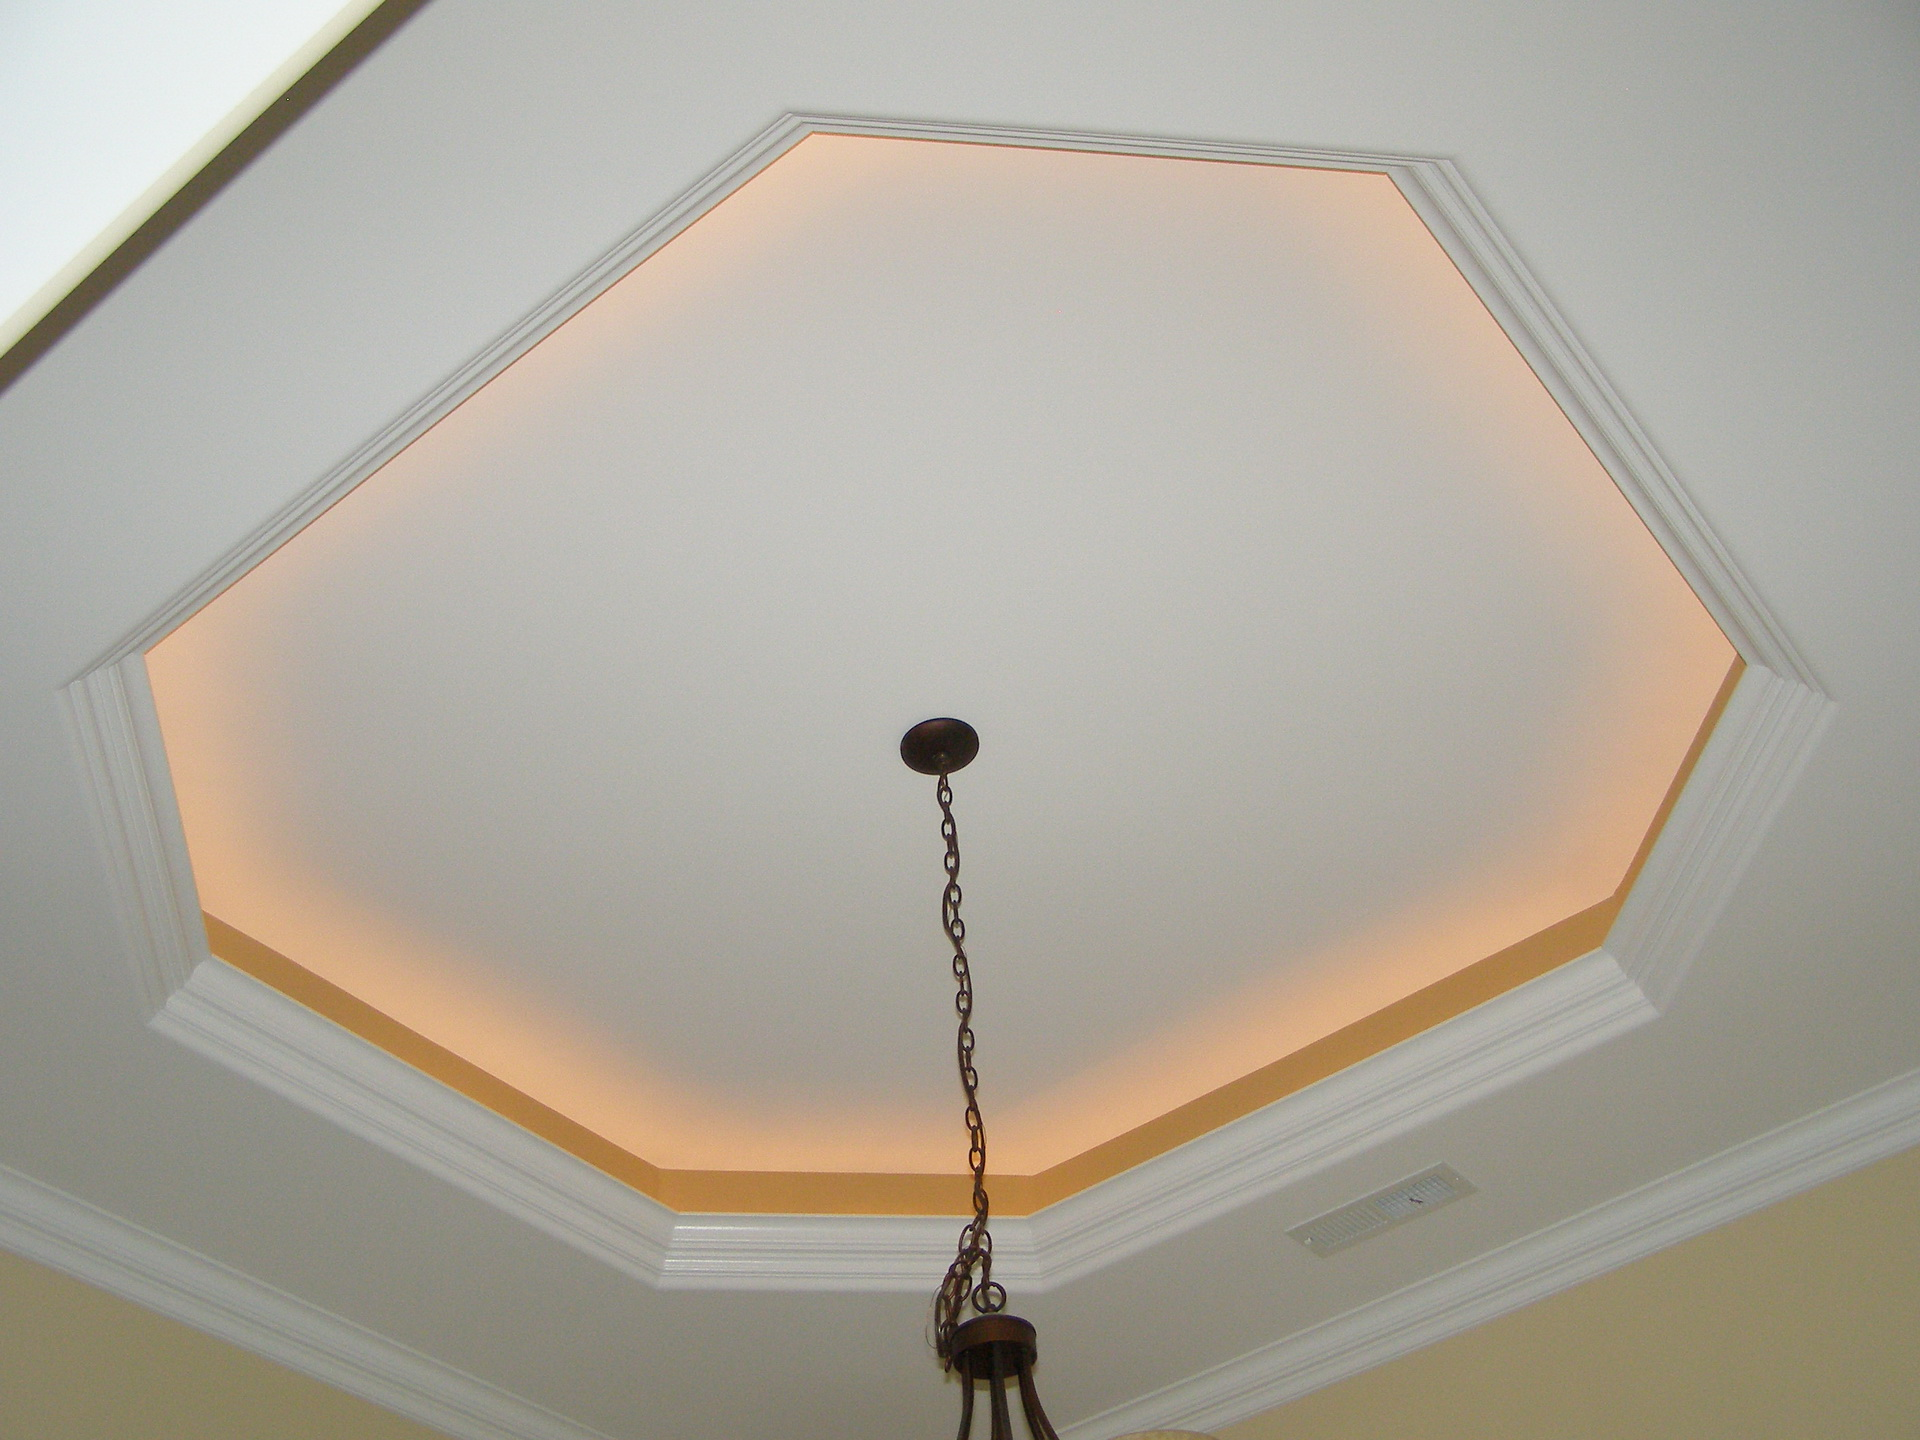 tray ceiling lighting ideas. One Should Also Remember To Add A Variety Of Color Lights Provide Decorative Effect And Appeal One\u0027s Eyes. Tray Ceiling Lighting Ideas O